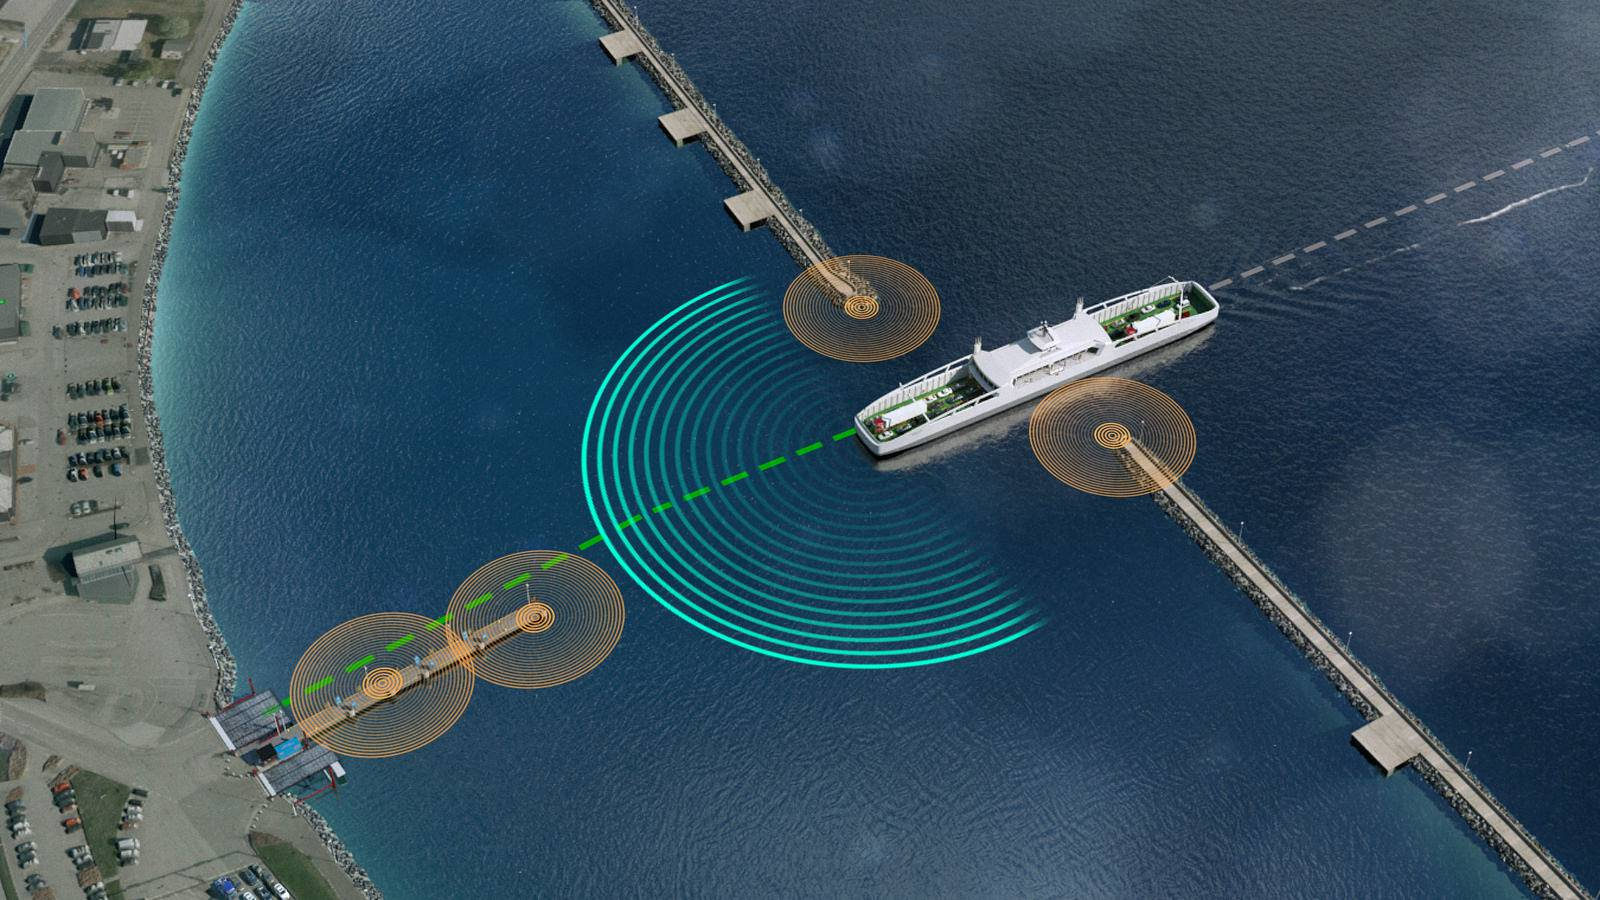 Ghost Ships IRL: How Will Autonomous Cargo Boats Change Shipping?